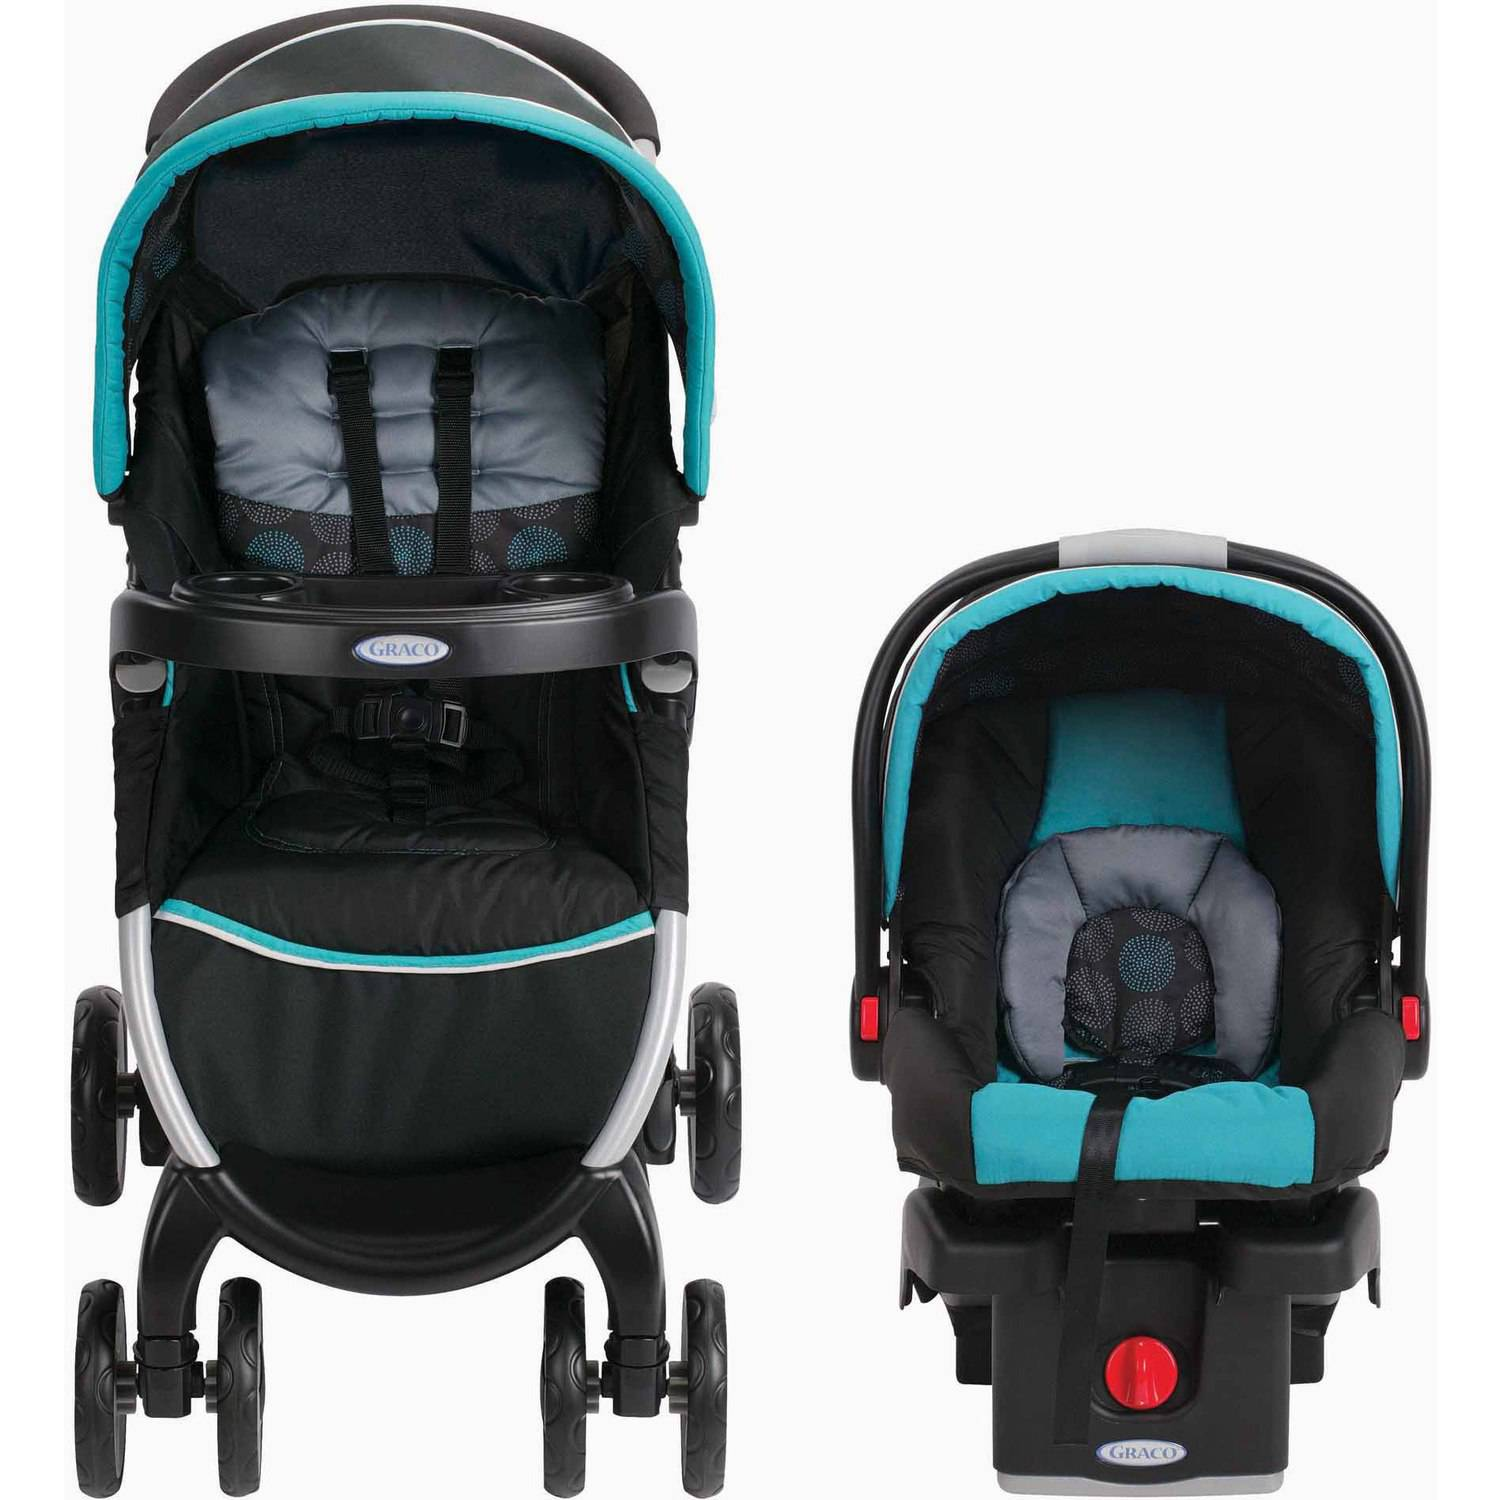 Graco FastAction Fold Click Connect Travel System Bristol